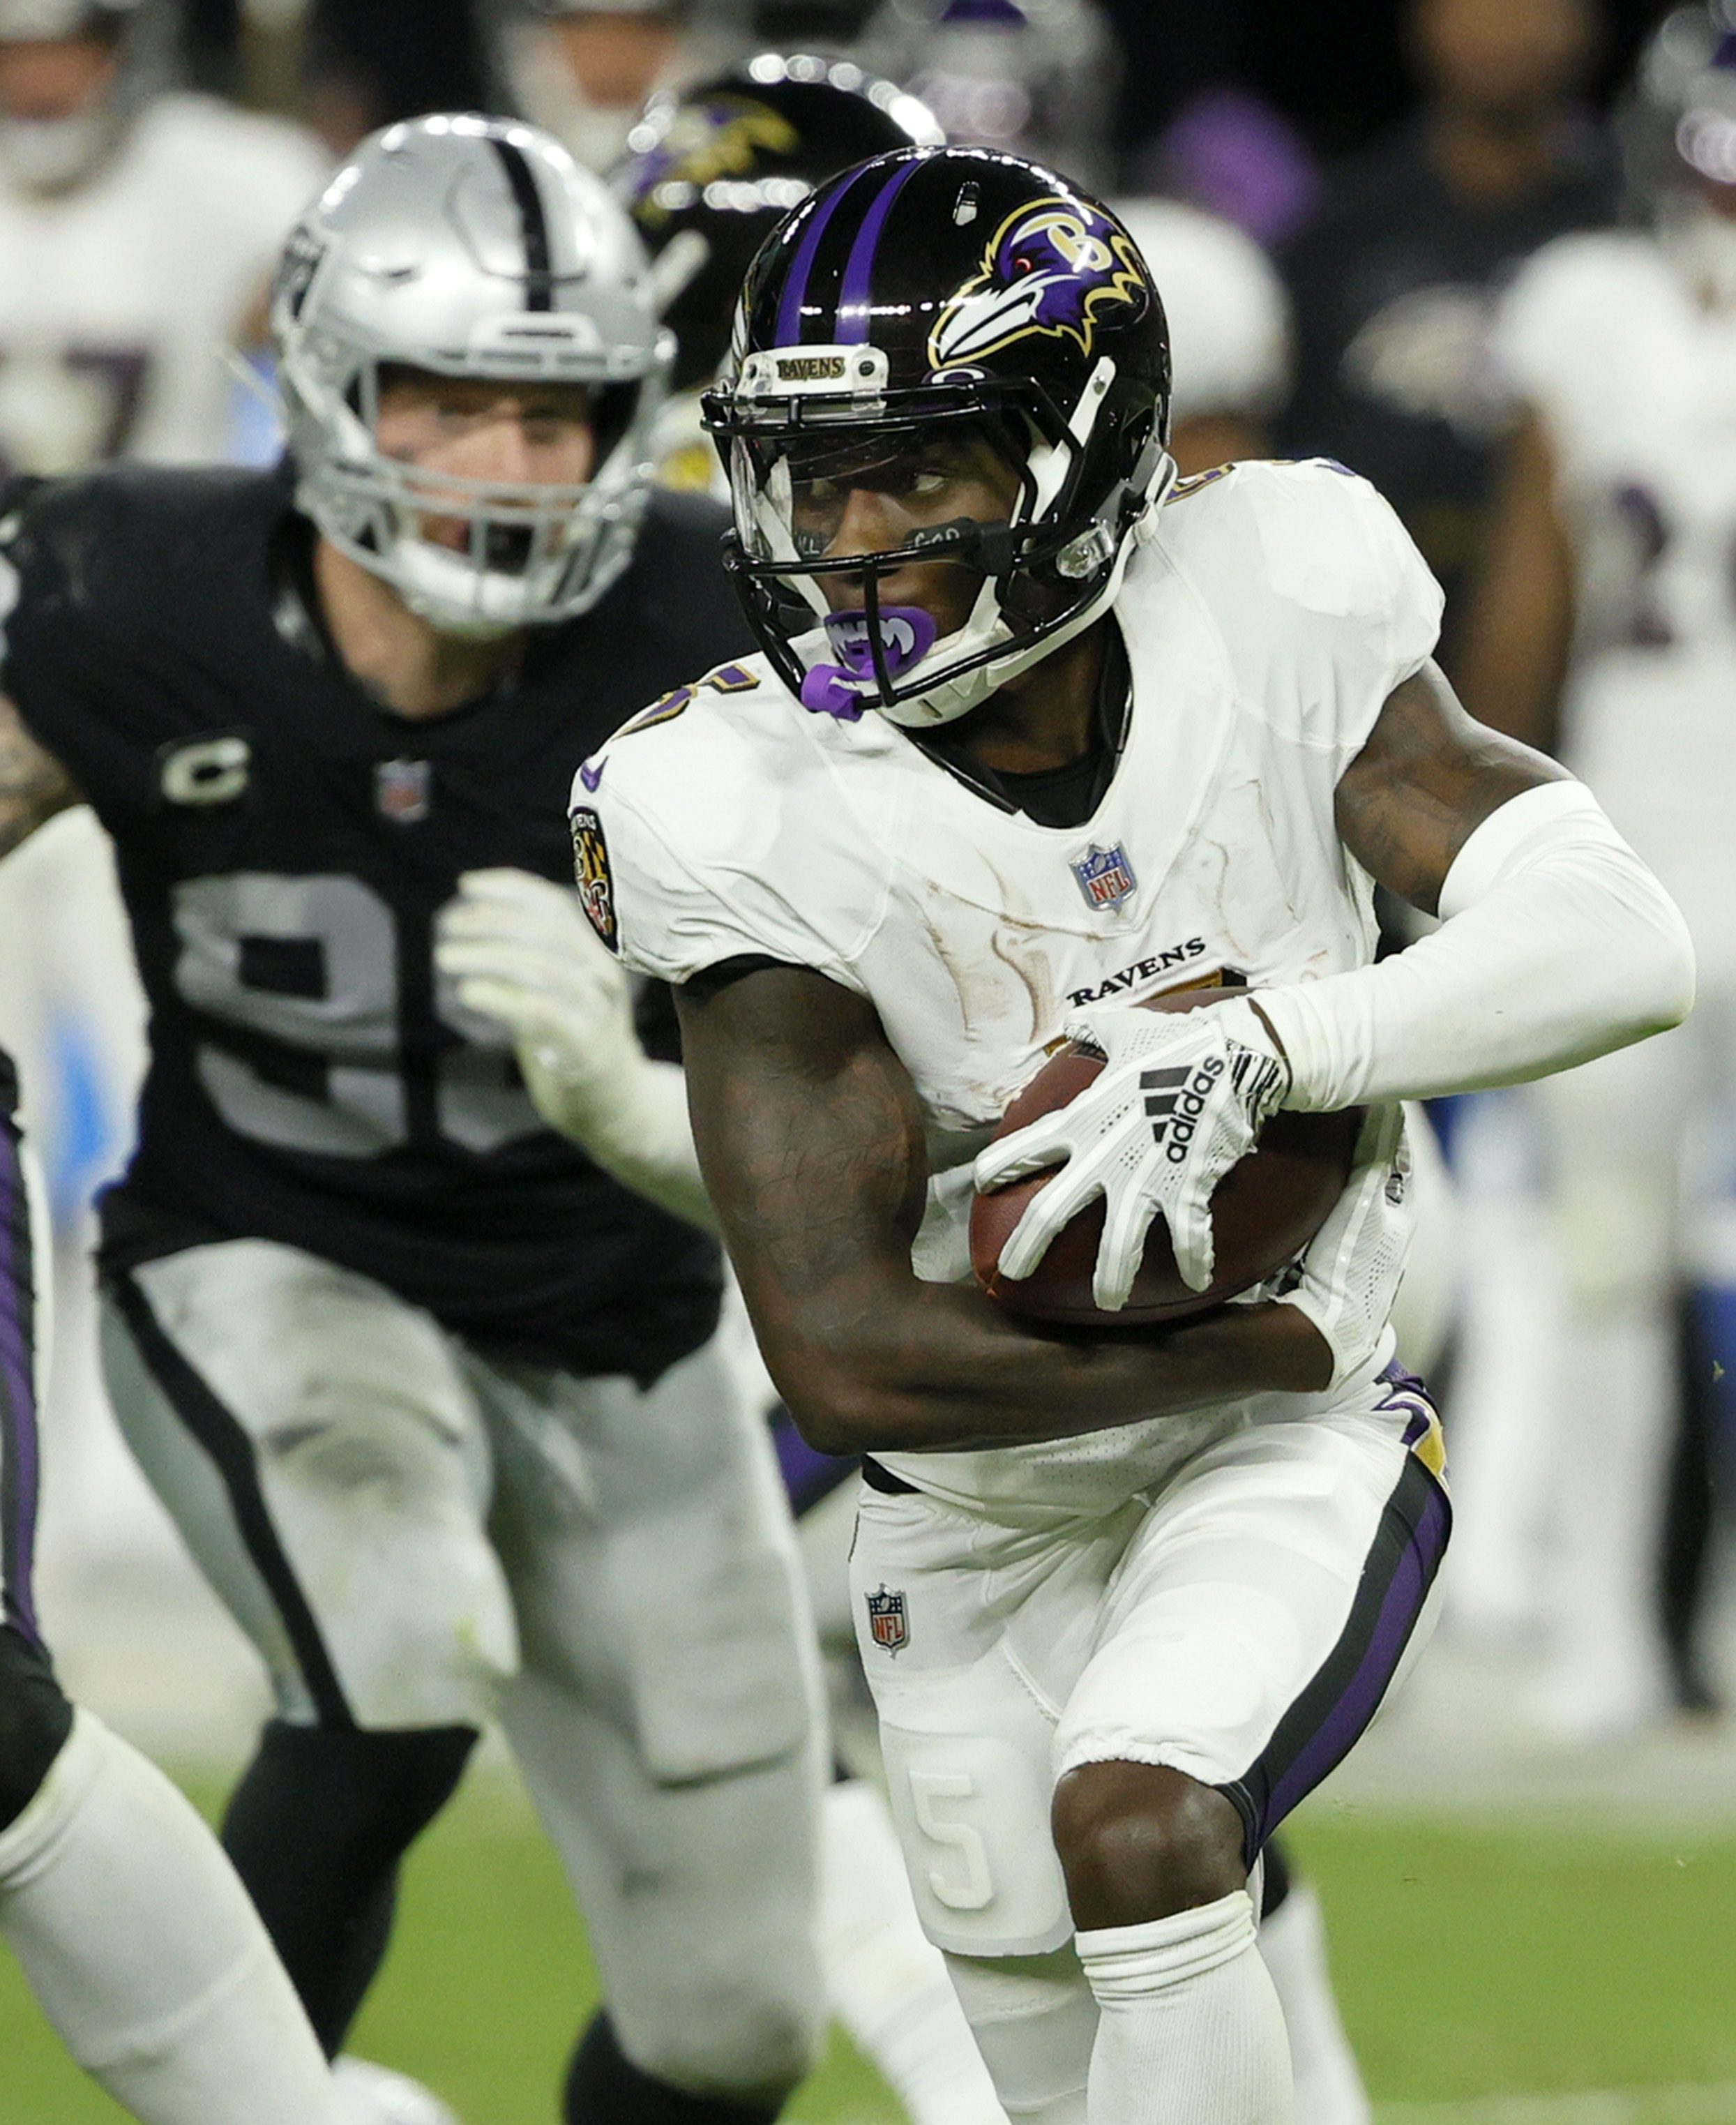 Wide receiver Marquise Brown #5 of the Baltimore Ravens runs against the Las Vegas Raiders during their game at Allegiant Stadium on September 13, 2021 in Las Vegas, Nevada.